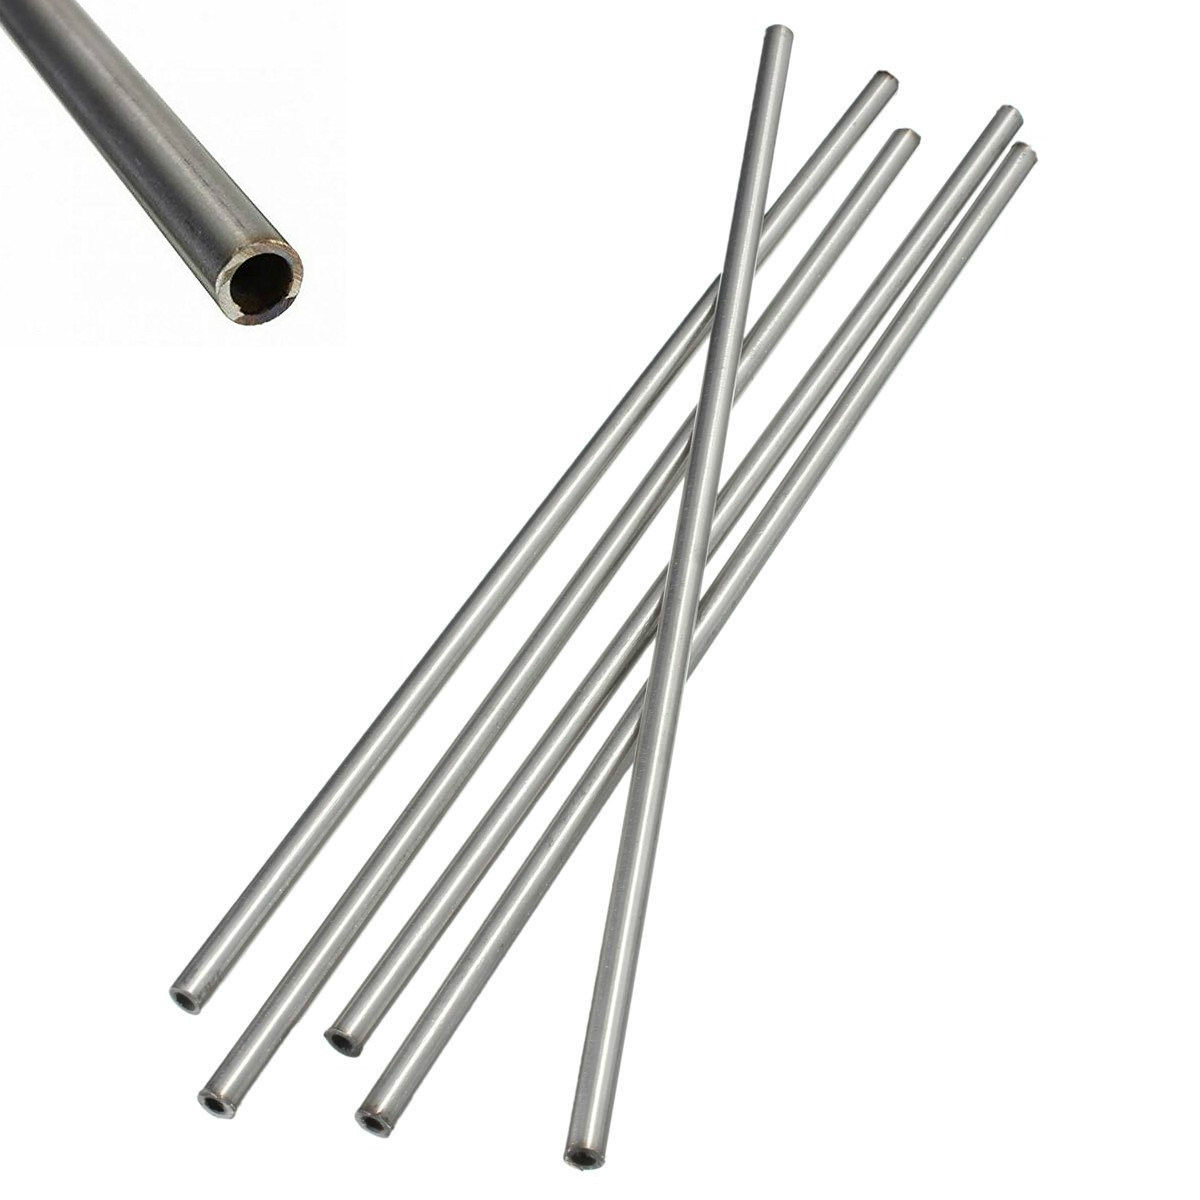 CynKen 1pcs OD 10mm x 5mm ID Stainless Pipe 304 Stainless Steel Capillary Tube Length 700mm